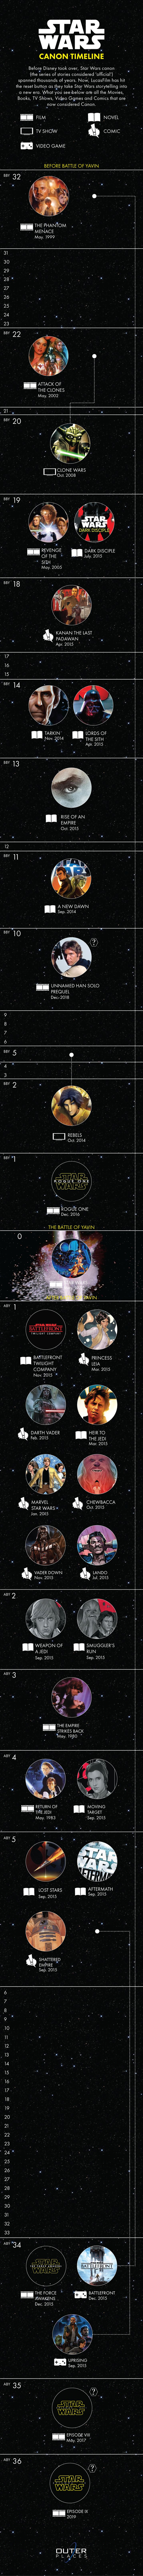 Star Wars Timeline | Outer Places